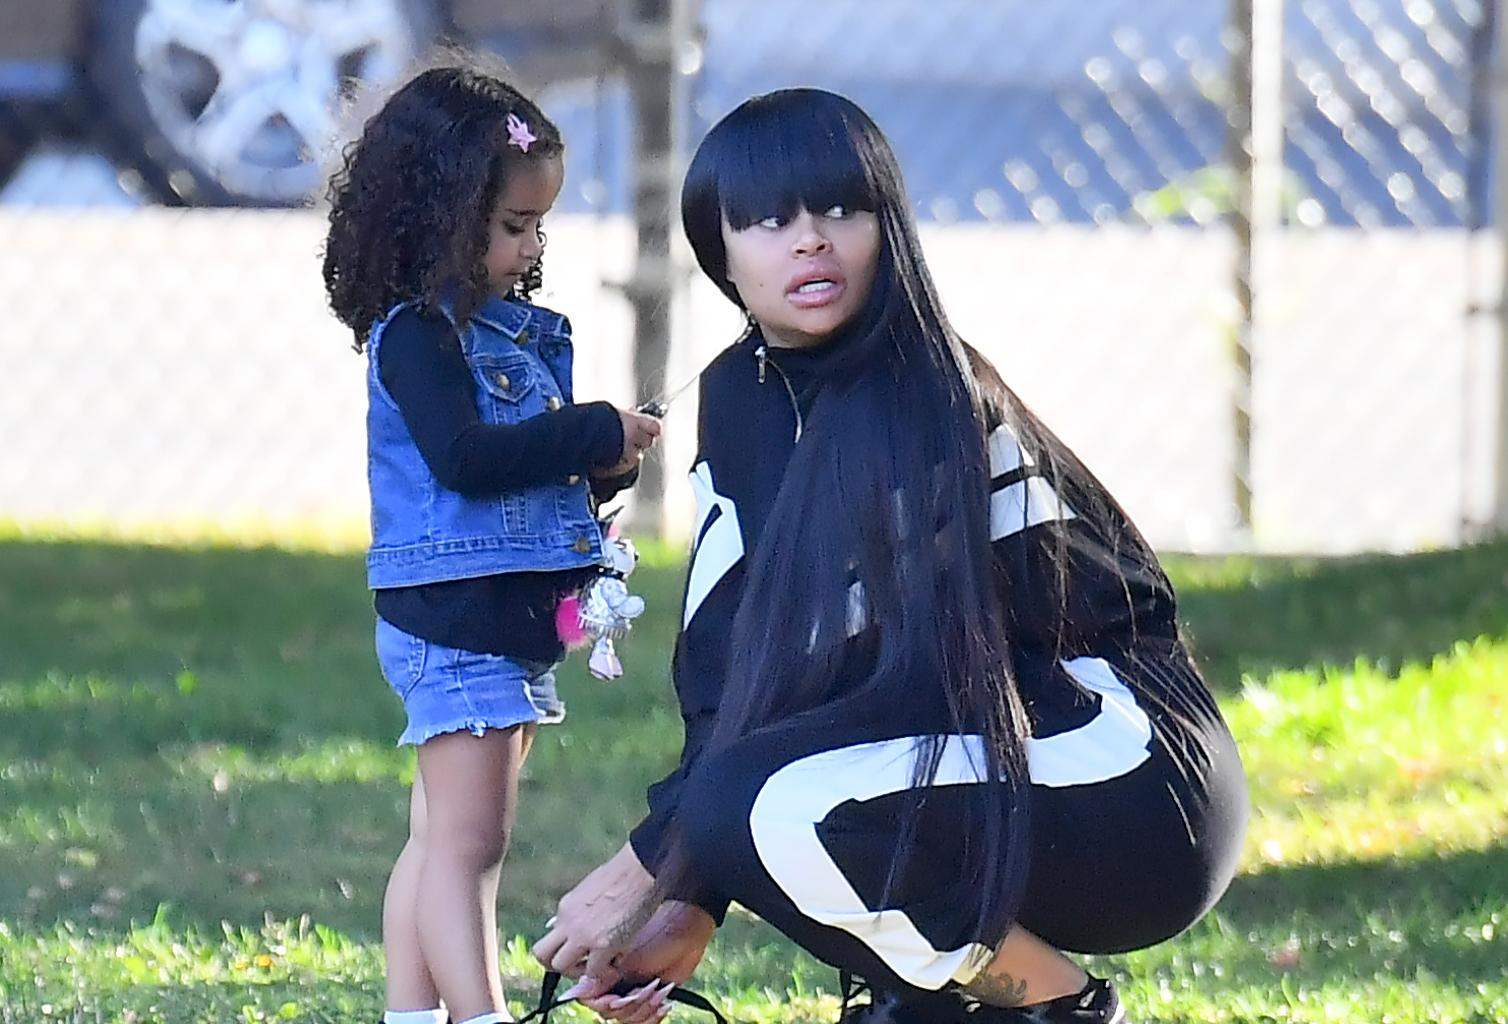 Blac Chyna And Dream Kardashian Look Like Twins With Matching Curly Ponytails As They Smooch In Cute Pic